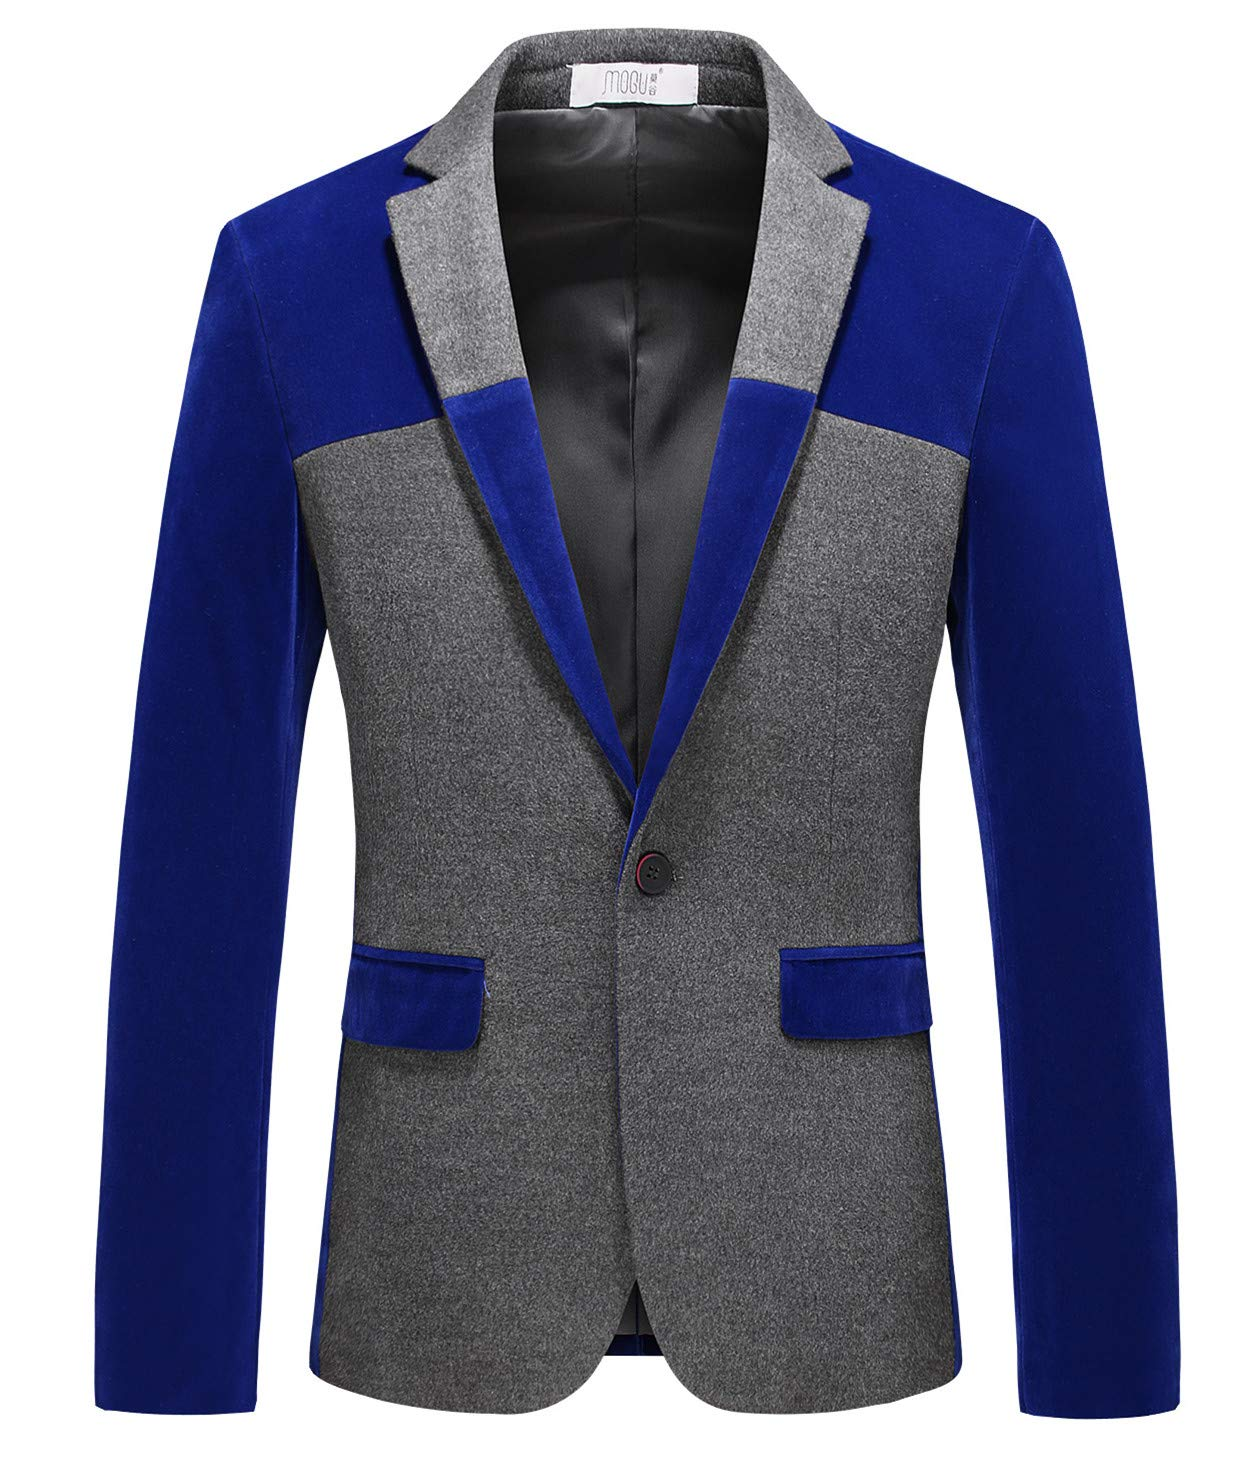 MOGU Men's 1 Button Center Vent Wool Blend Blazer Jacket